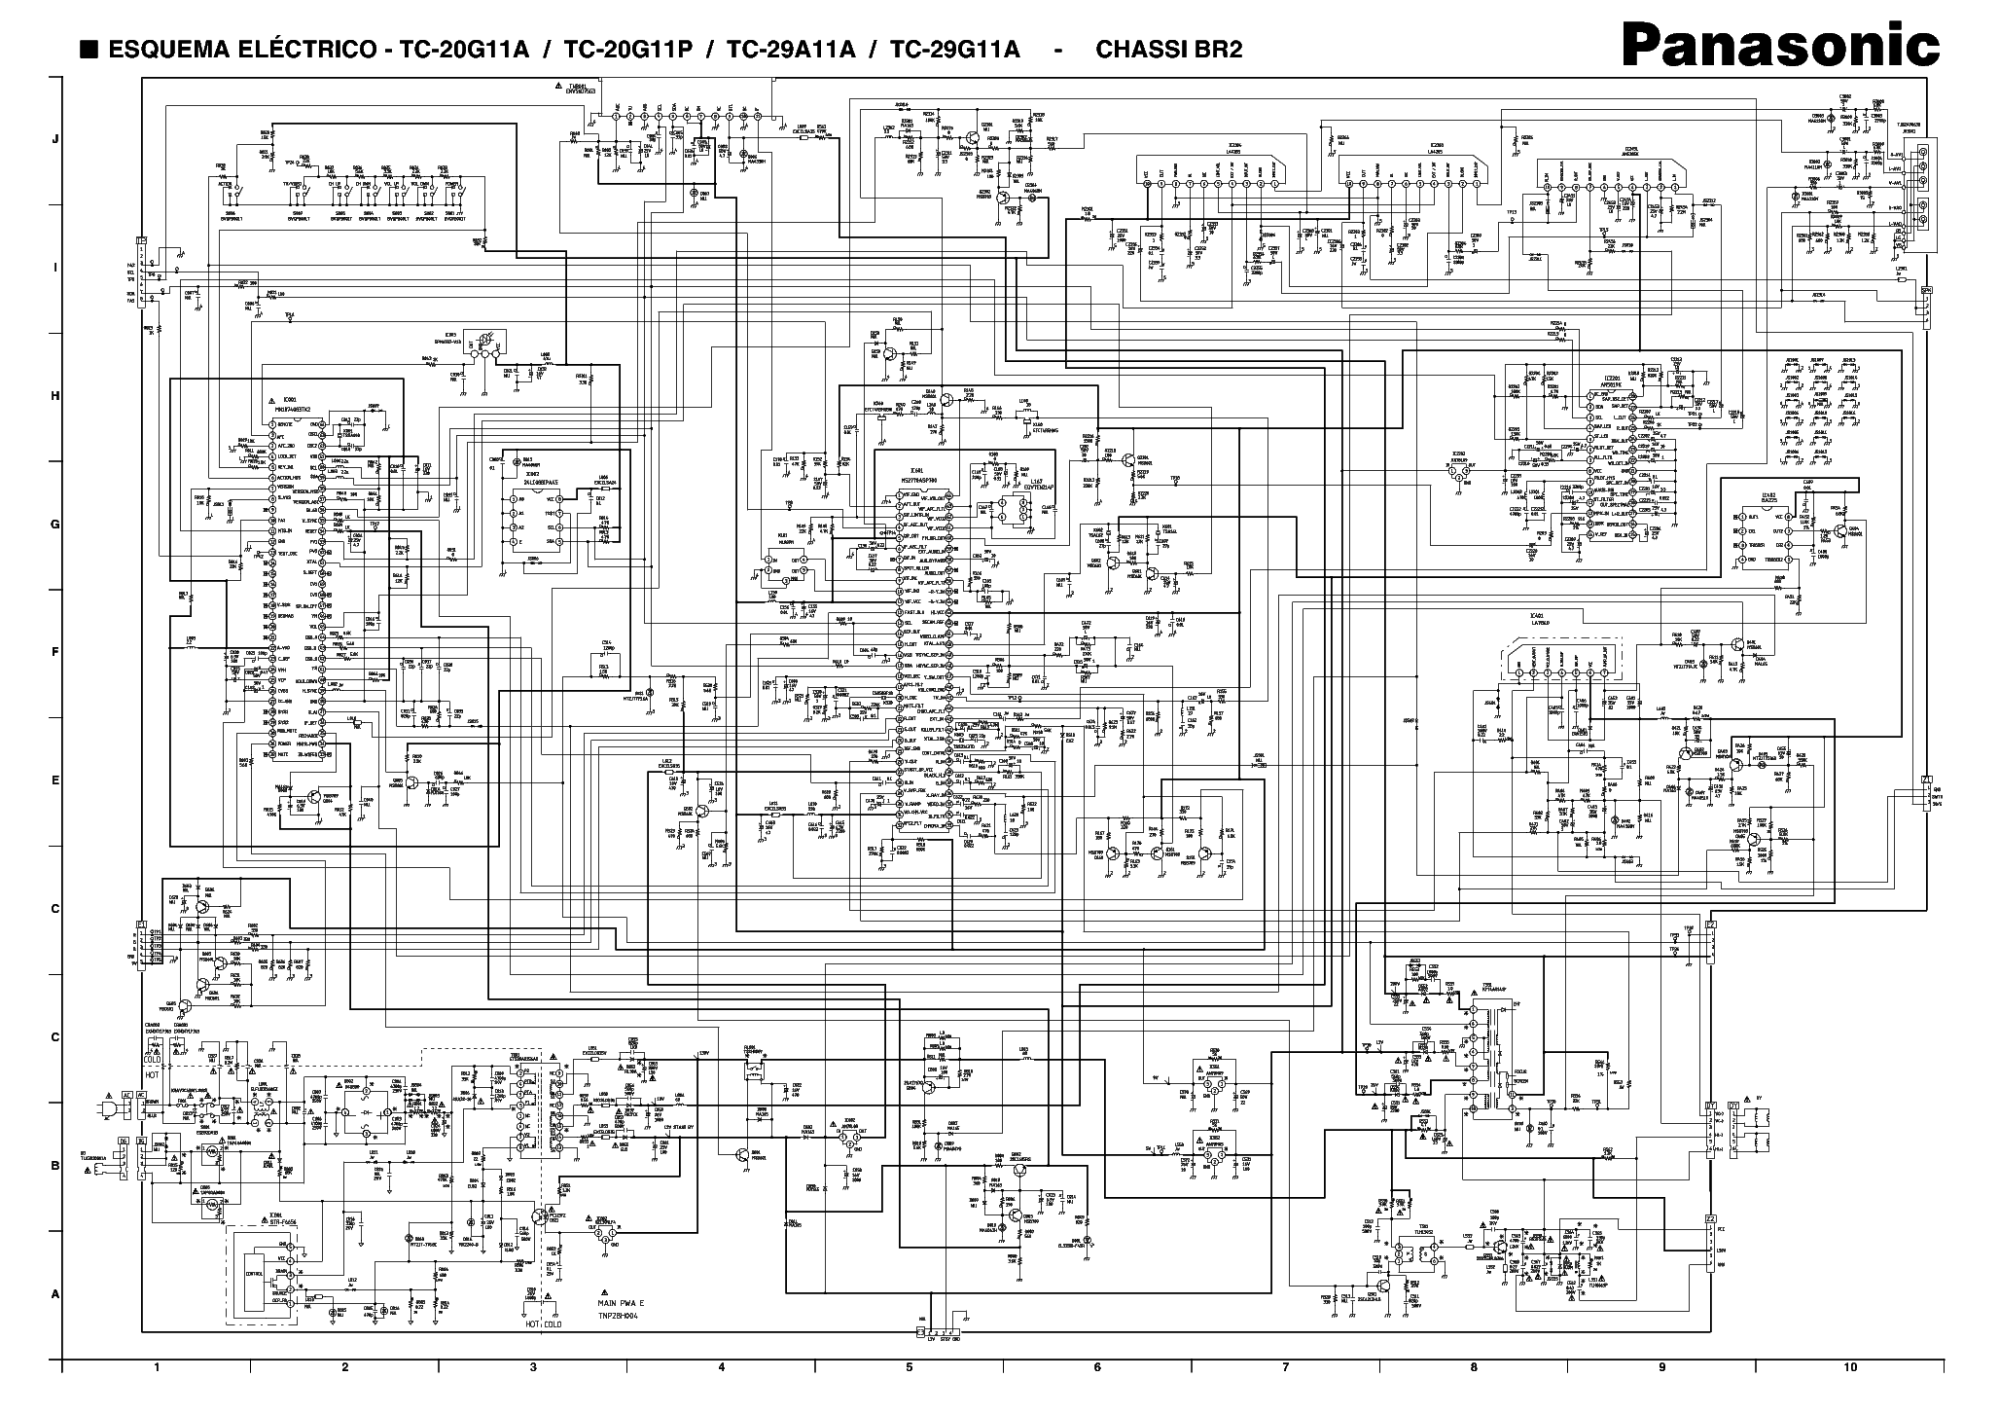 hight resolution of vizio tv wiring schematic wiring diagrams scematic dvd to tv connection wiring panasonic tv wiring diagram